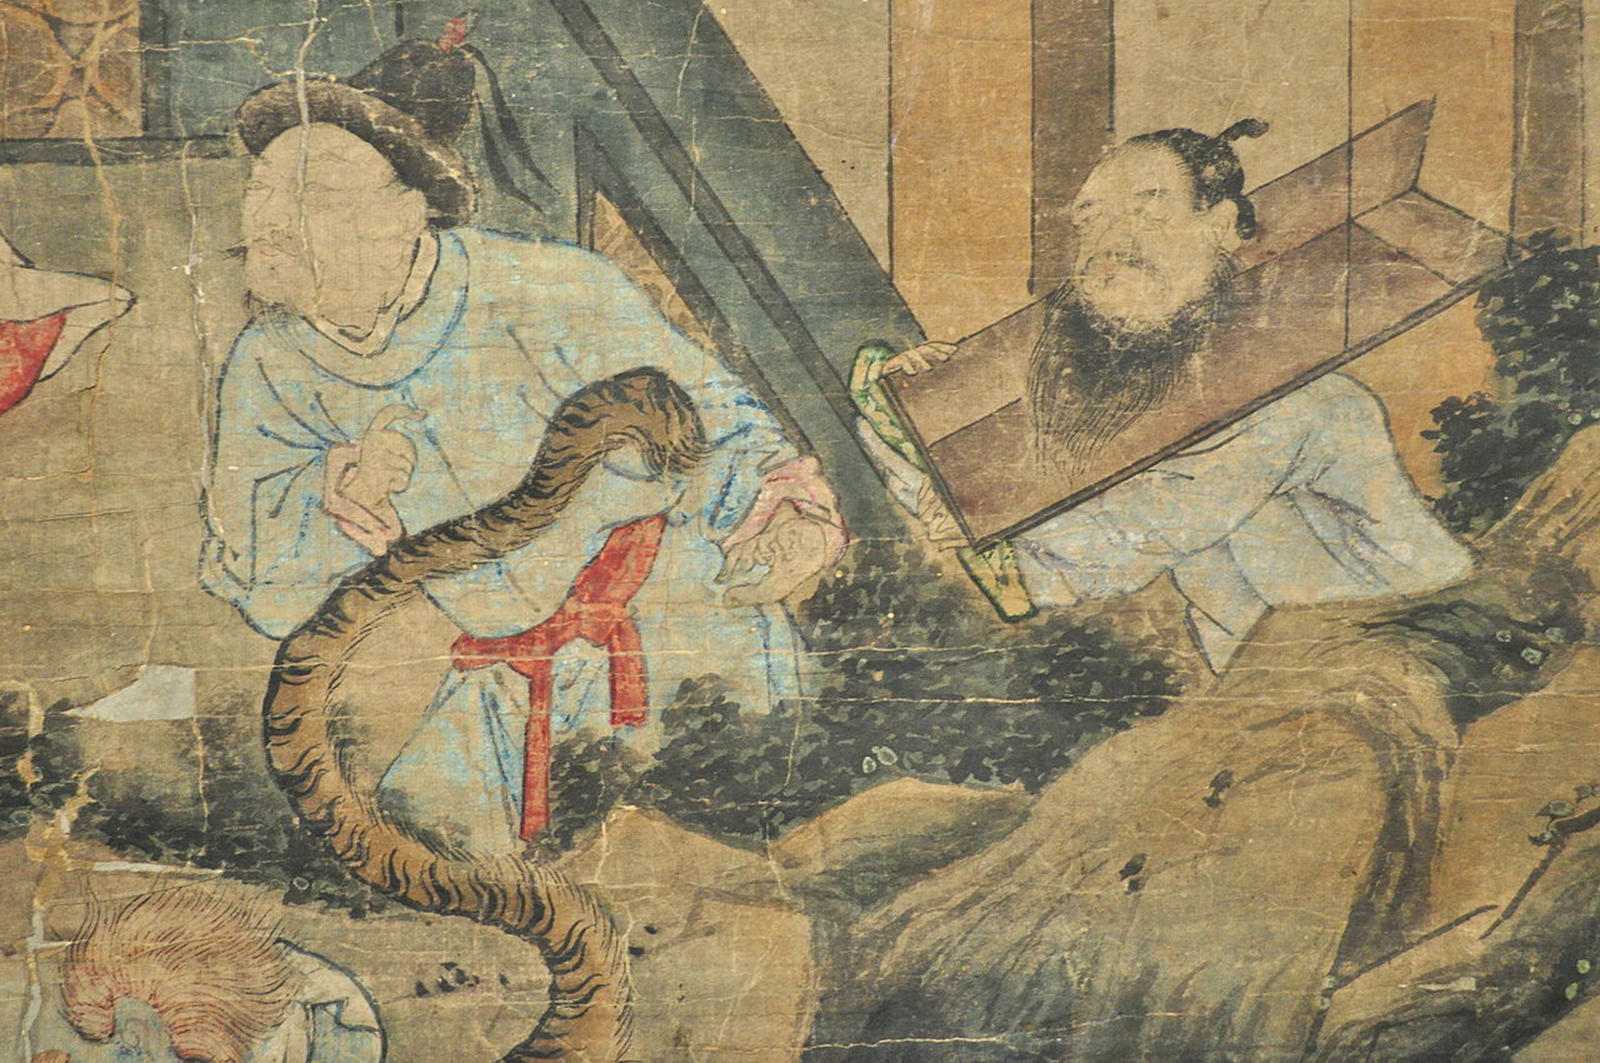 Painting of Buddhist Ten Judgements of Hell